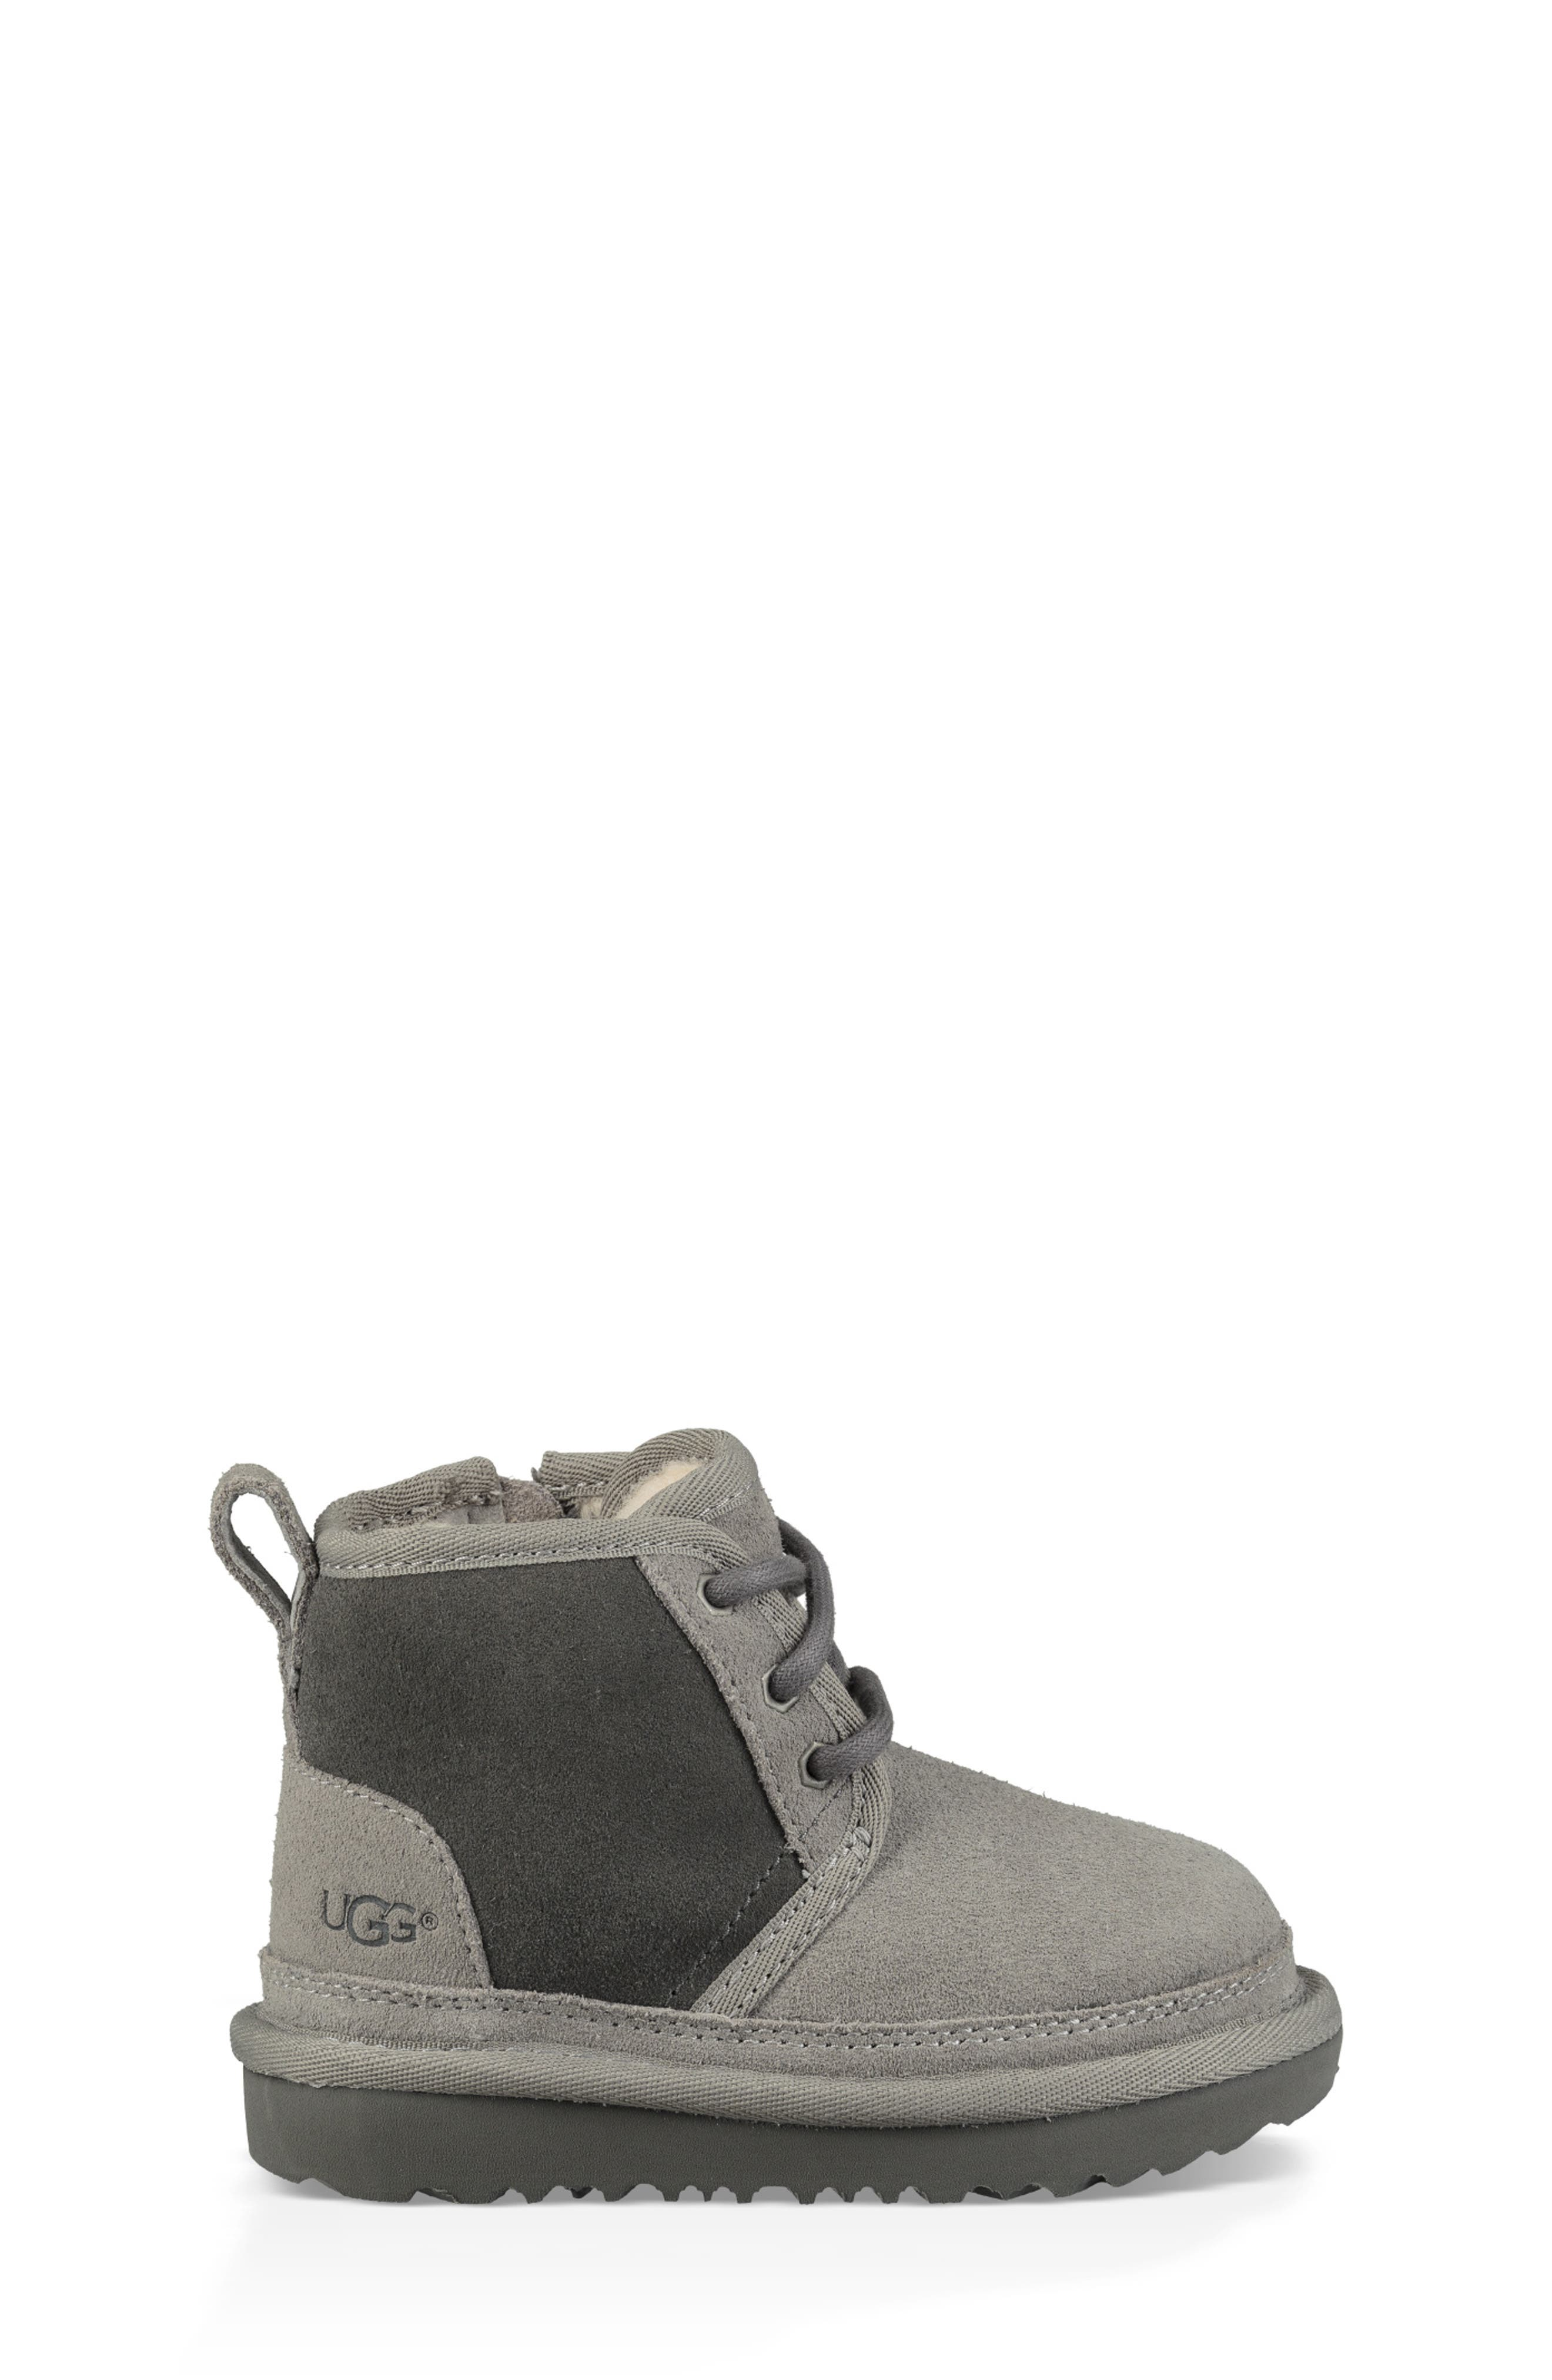 Neumel II Water Resistant Chukka Boot,                             Alternate thumbnail 3, color,                             CHARCOAL